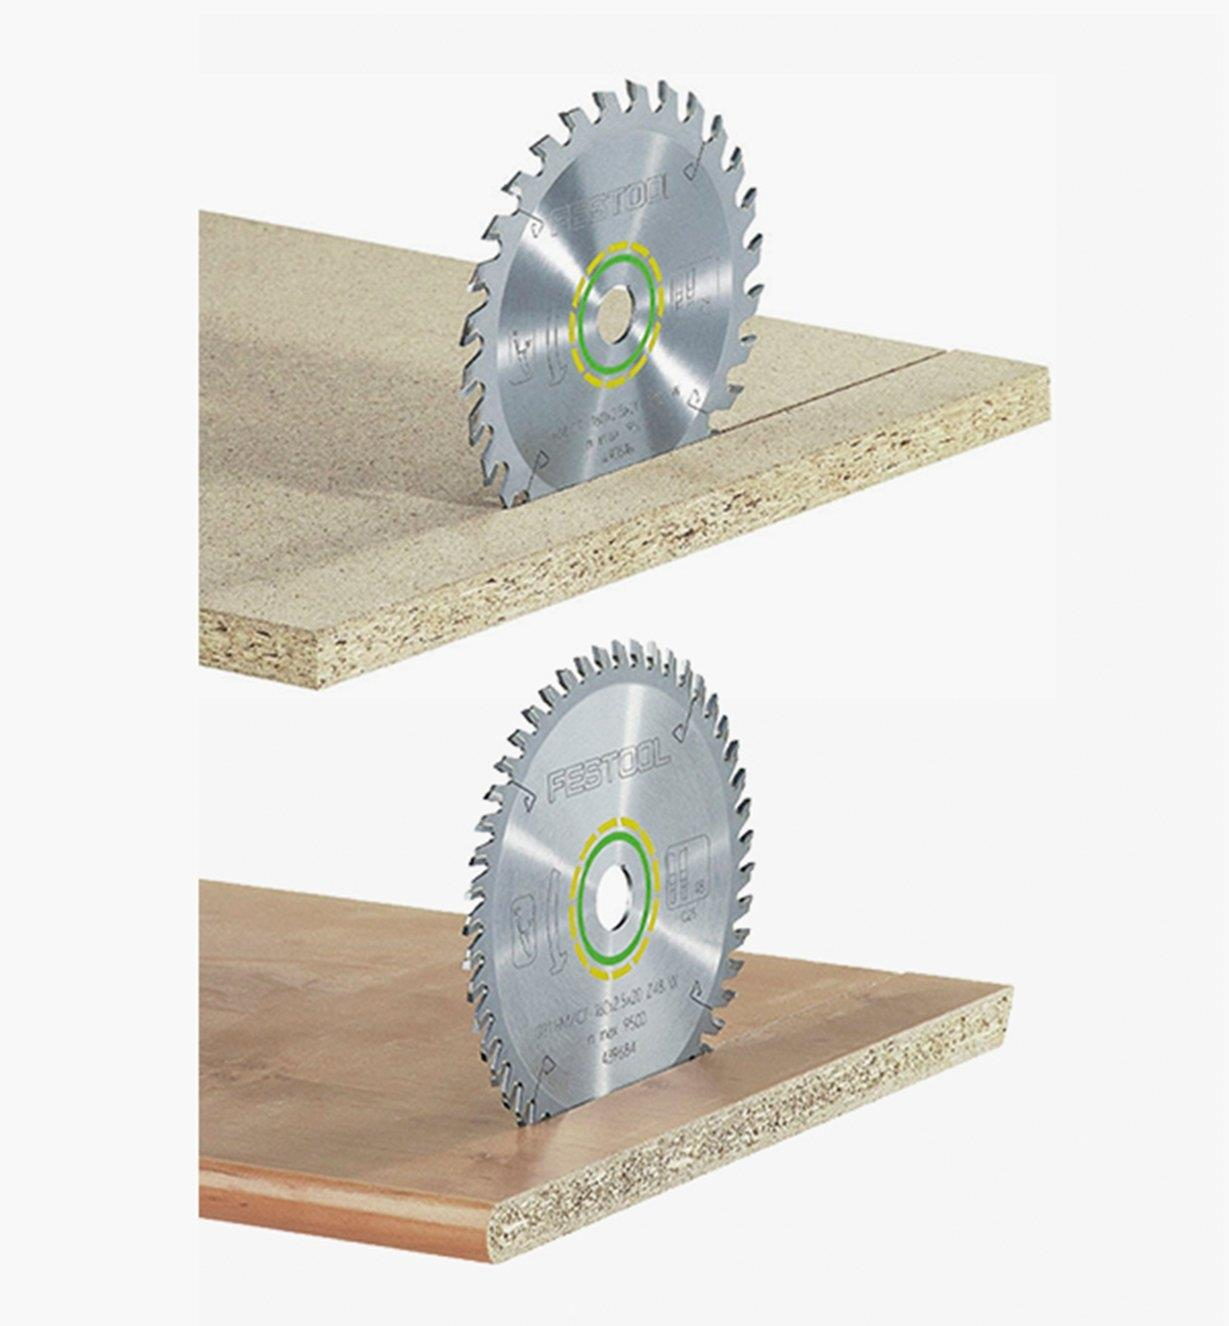 Universal blade upright on particleboard and a fine-tooth blade upright on a veneered panel